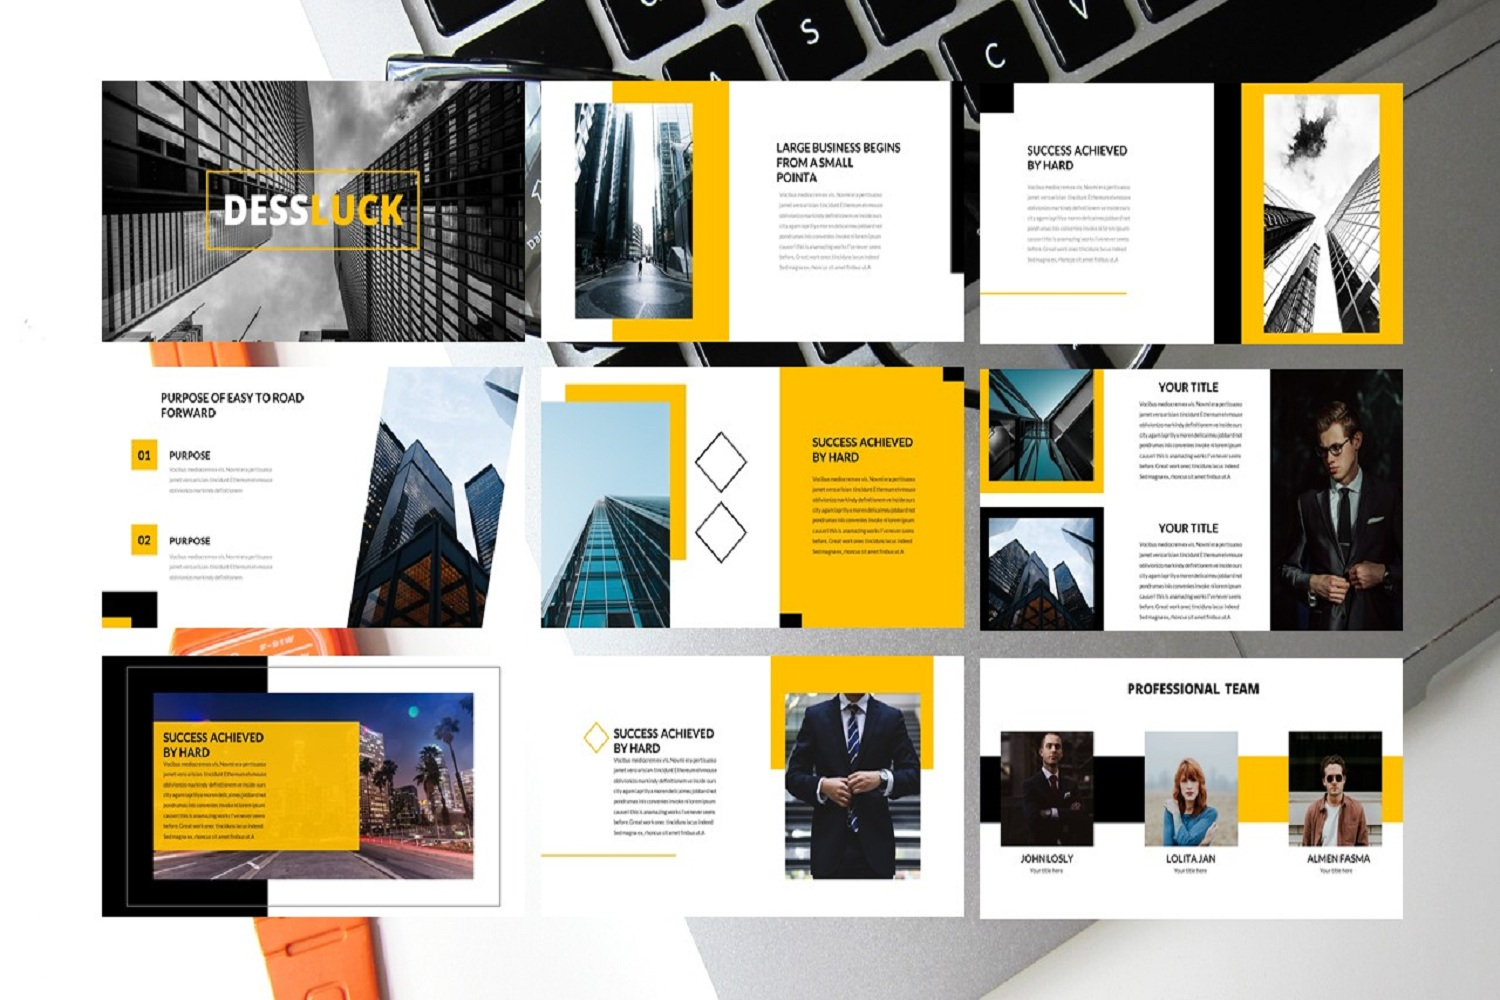 business presentation template example image 2